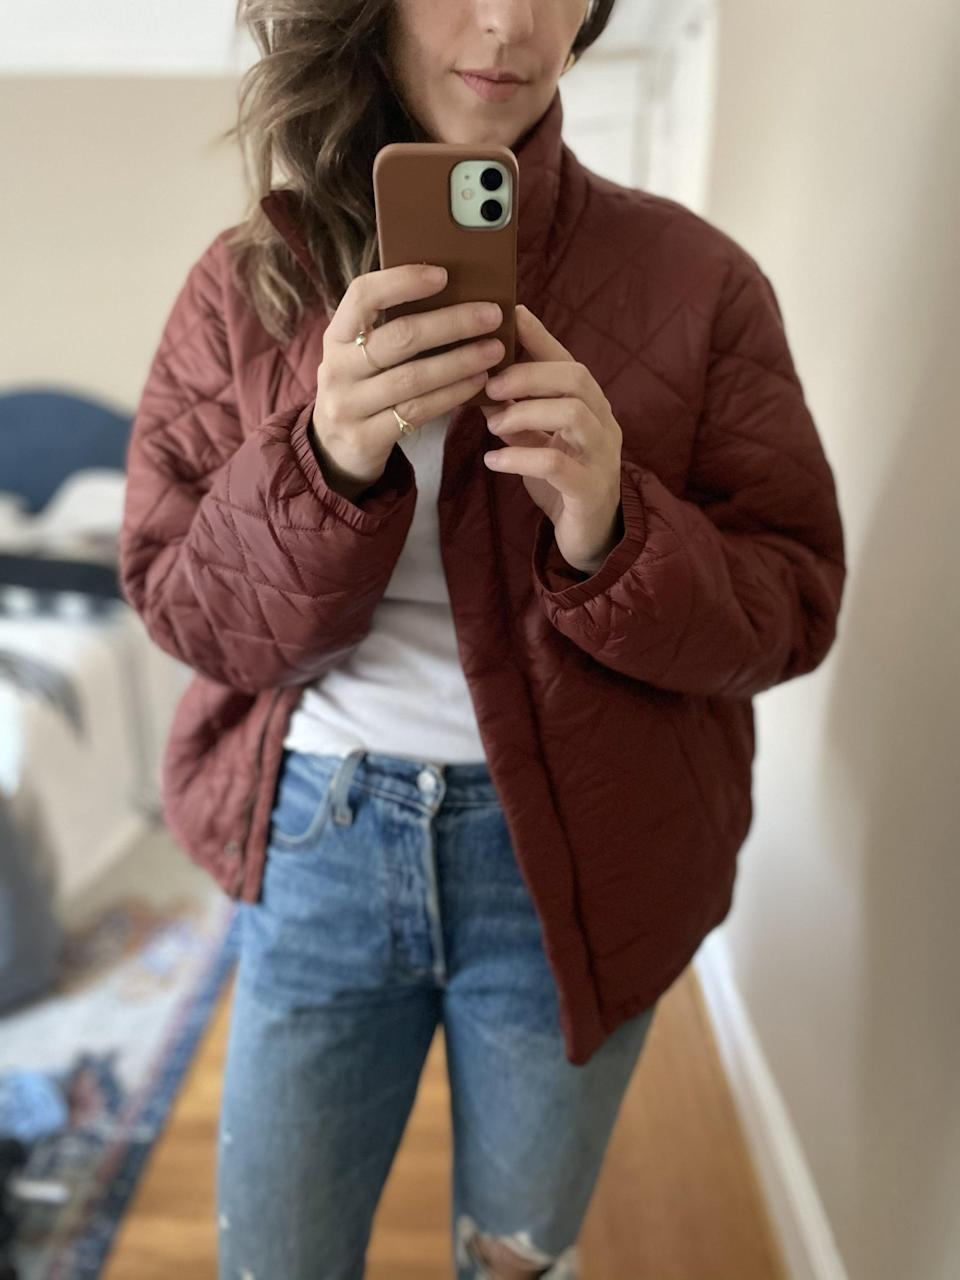 """<p><strong>The item:</strong> <span>Old Navy Lightweight Diamond-Quilted Nylon Puffer Jacket</span> (Sold Out)</p> <p><strong>What our editor said: </strong>""""This is such a classic fall look that I can get used to wearing daily. The jacket is nice and oversize, and has sort of a boxy cut. I liked wearing it with medium-rinse vintage jeans because I knew the rich copper color would really pop against the blue."""" - RB</p> <p>If you want to read more, here is the <a href=""""http://www.popsugar.com/fashion/best-puffer-jacket-from-old-navy-editor-review-48056533"""" class=""""link rapid-noclick-resp"""" rel=""""nofollow noopener"""" target=""""_blank"""" data-ylk=""""slk:complete review"""">complete review</a>.</p>"""